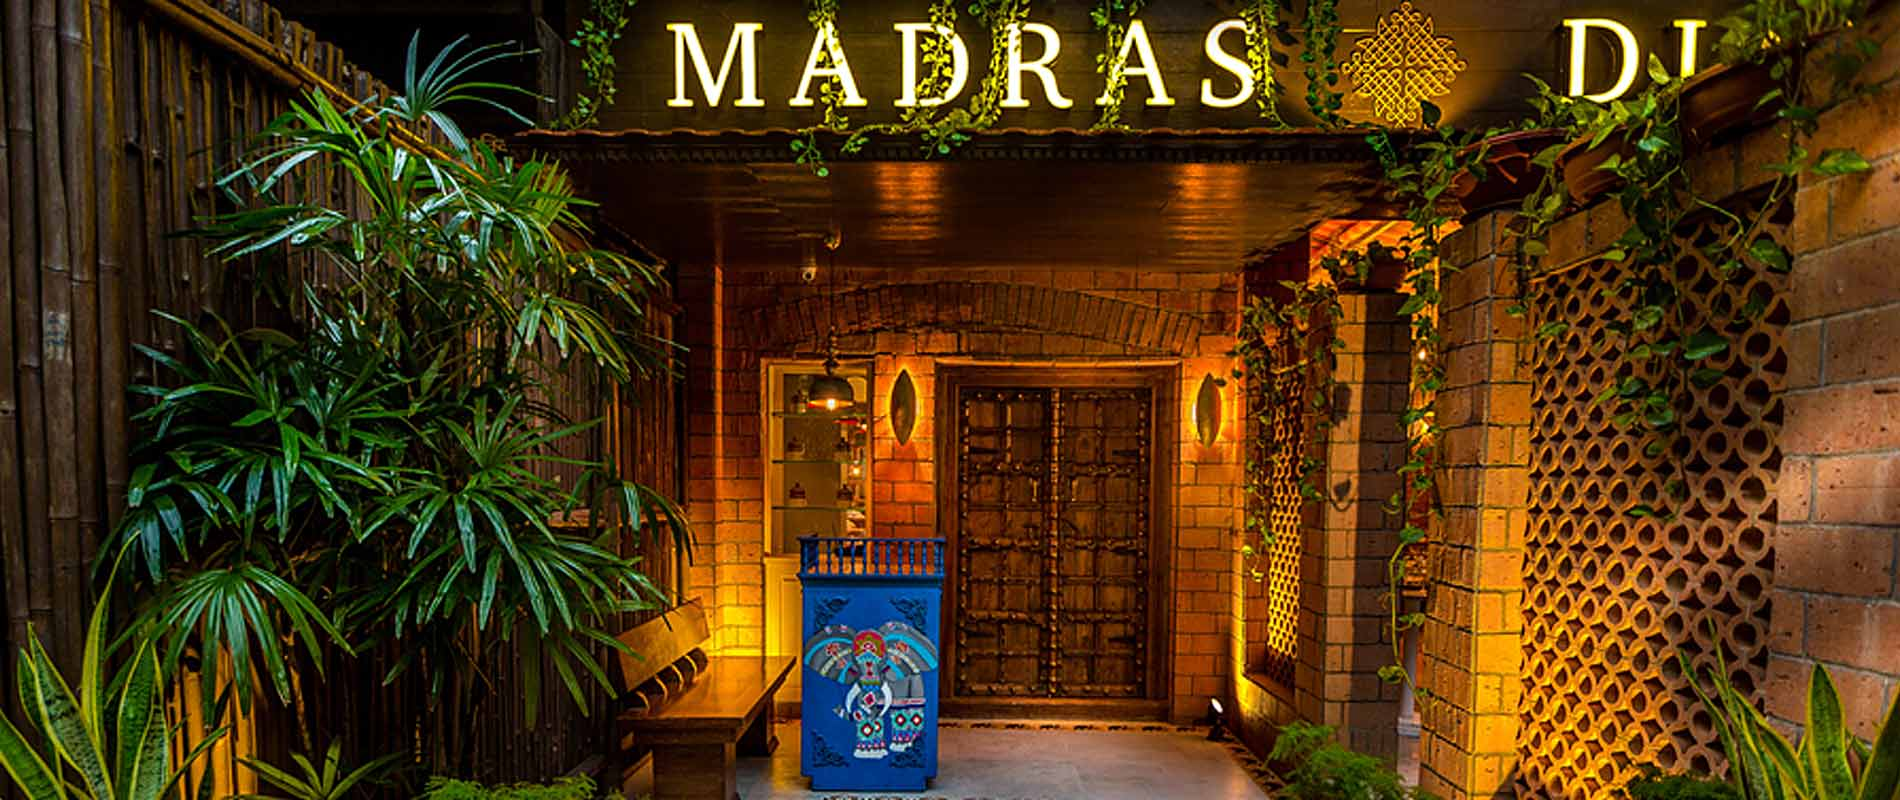 Madras diaries south Indian restaurant interior design, India's best restaurant and bar interior designers, South Indian restaurant interior design concept, Sumessh Madras diaries, South Indian restaurant, South Indian interiors, Mumbai restaurant, Luxury interior, Modern restaurant interior Sumessh Menon & Associates, Best Restaurant Interior Designers, Top Interior designer, Indian Interior designers, Best Restaurant architects in India, restaurant interior design firm, Modern Interior design, Contemporary interior designers, Best interior designers, best Indian architects, restaurant interiors, Mumbai restaurants, Theme restaurant, Mumbai best restaurant, creative restaurant interior, best restaurant interiors, Interior ideas, Best bar designers, Interior design company, Architects,